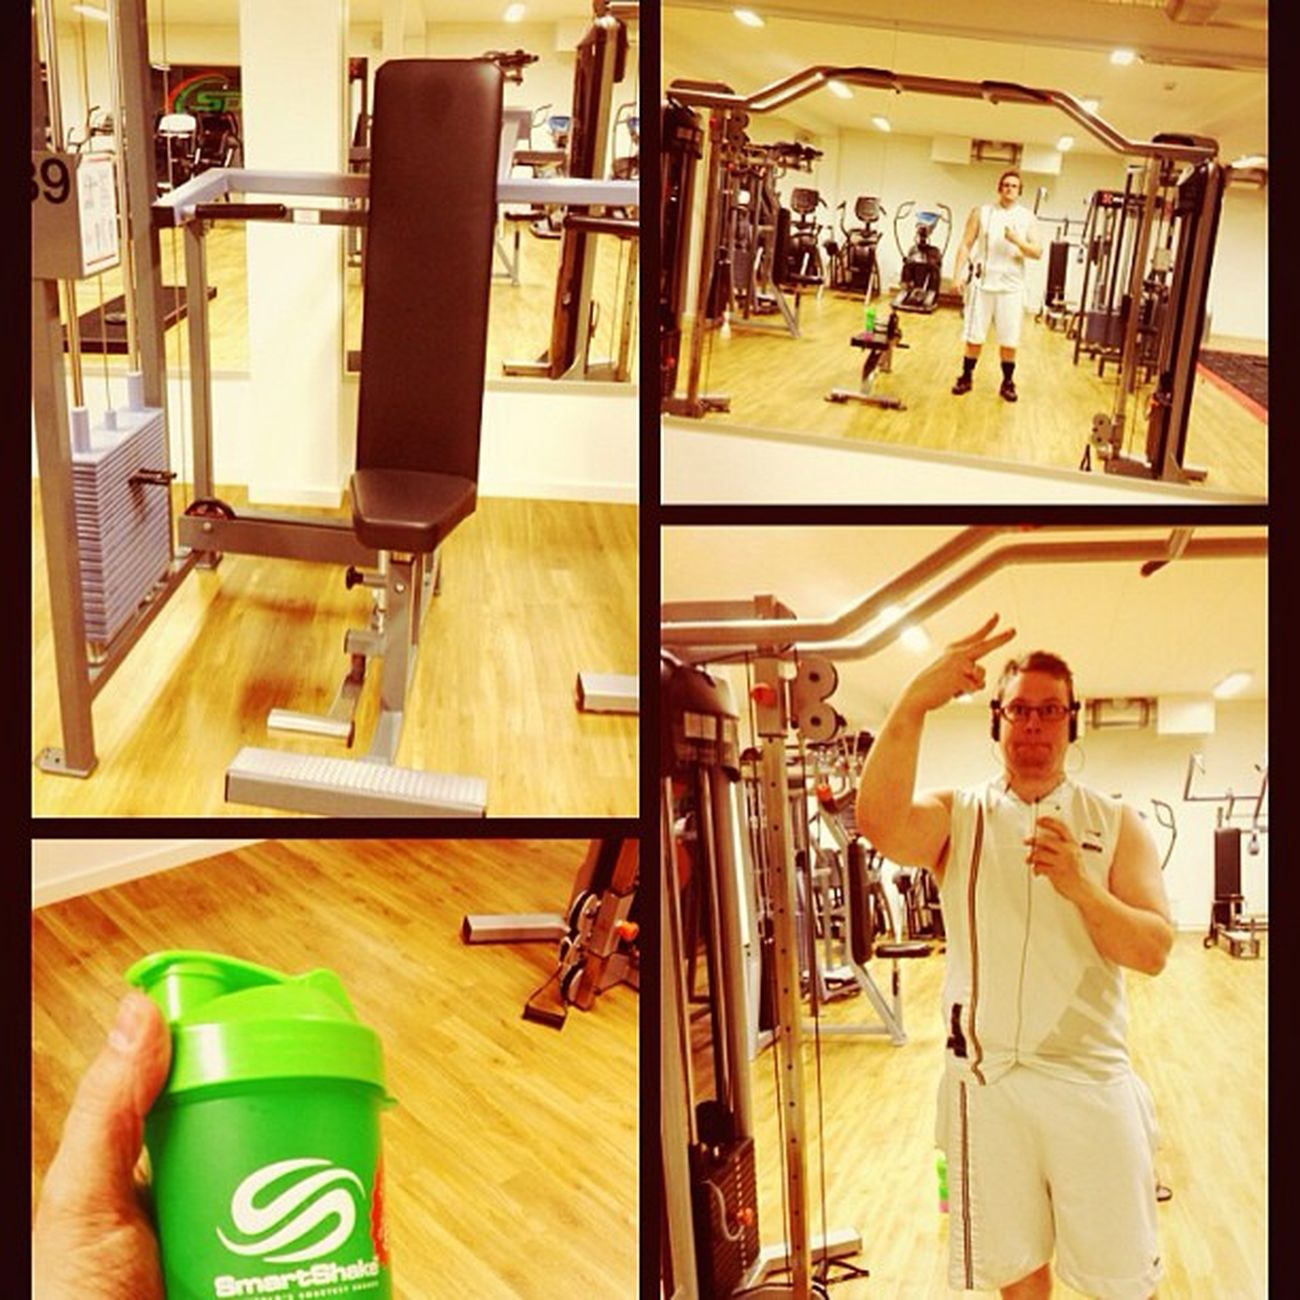 Late night session. Sportlife Shoulders Bmr Aldrigvila smartshake icaniwill stenungsund